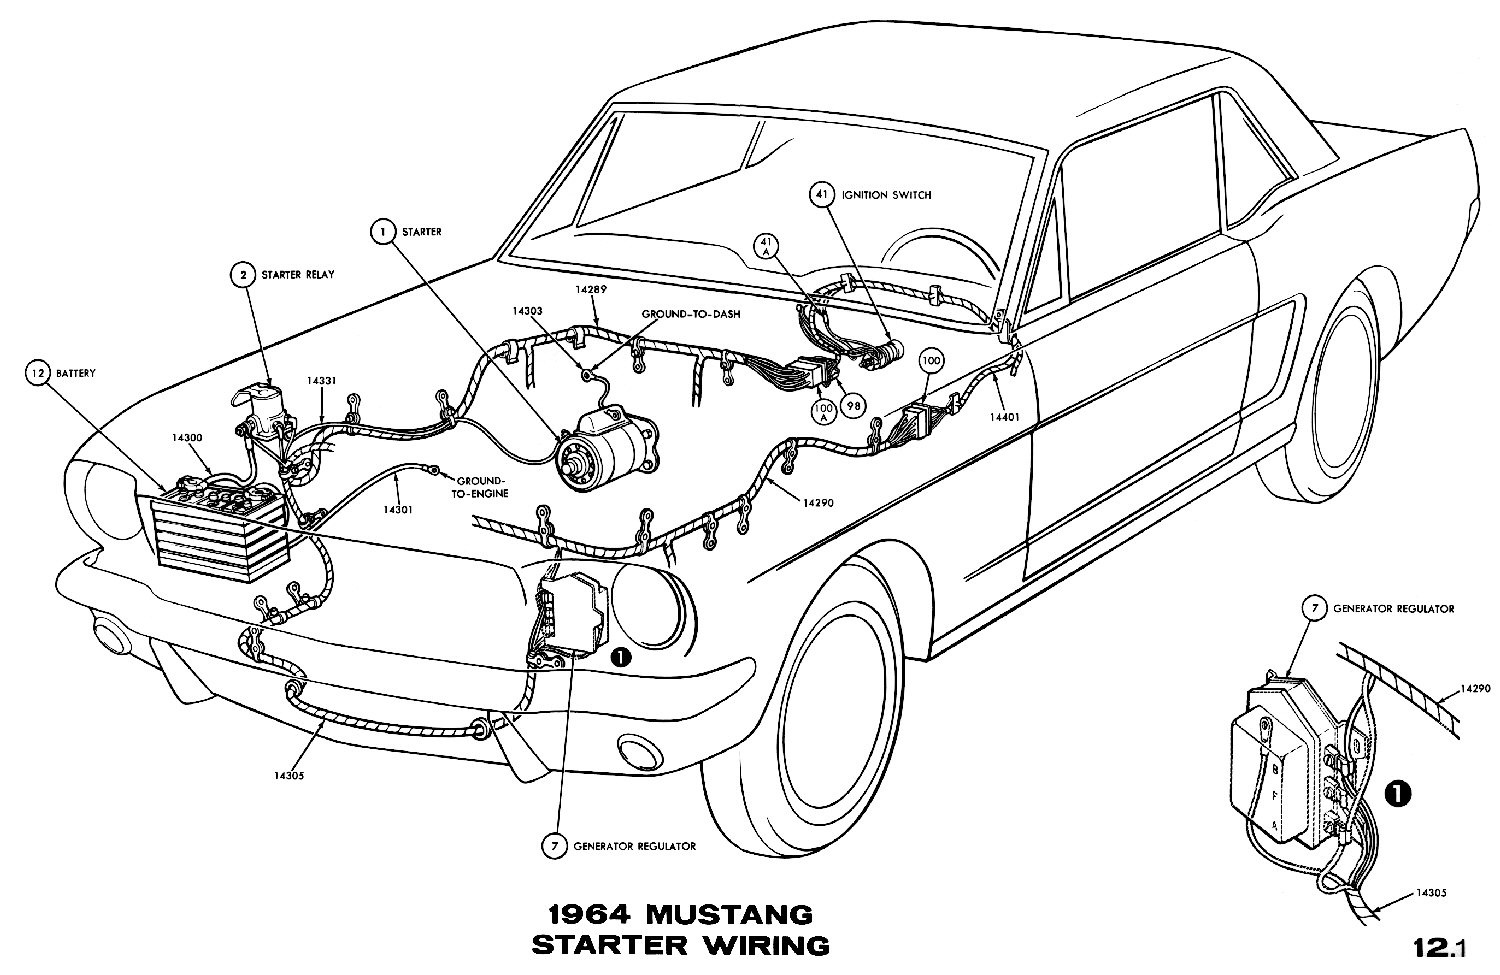 1964 Mustang Wiring Diagrams Average Joe Restoration 1968 Transmission Selector Diagram Sm1964d Starter Pictorial Or Schematic